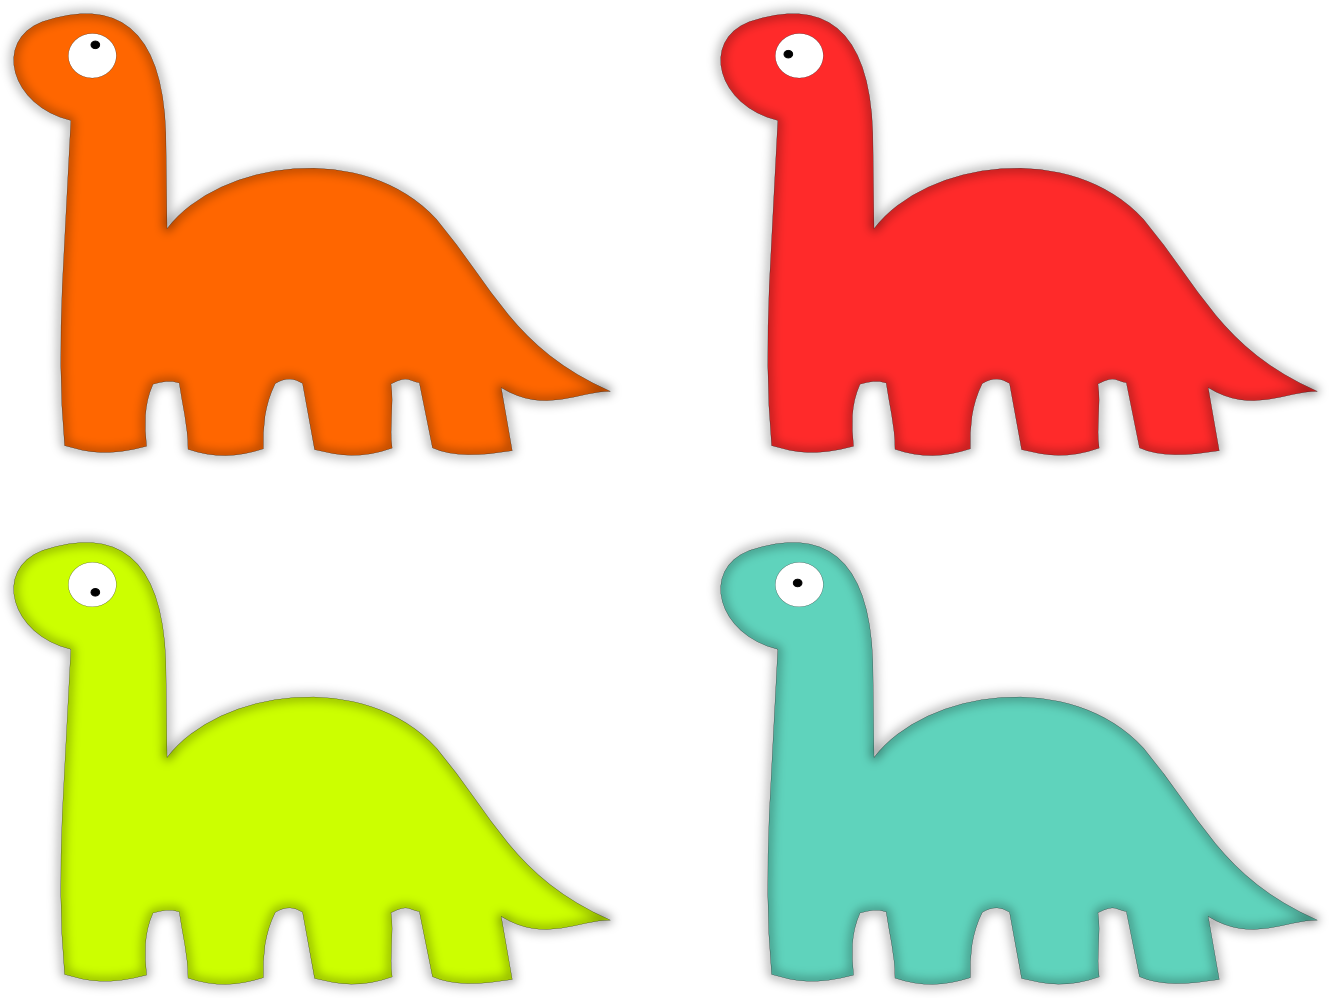 Dino svg christmas. Dinosaurs clipart friendly dinosaur